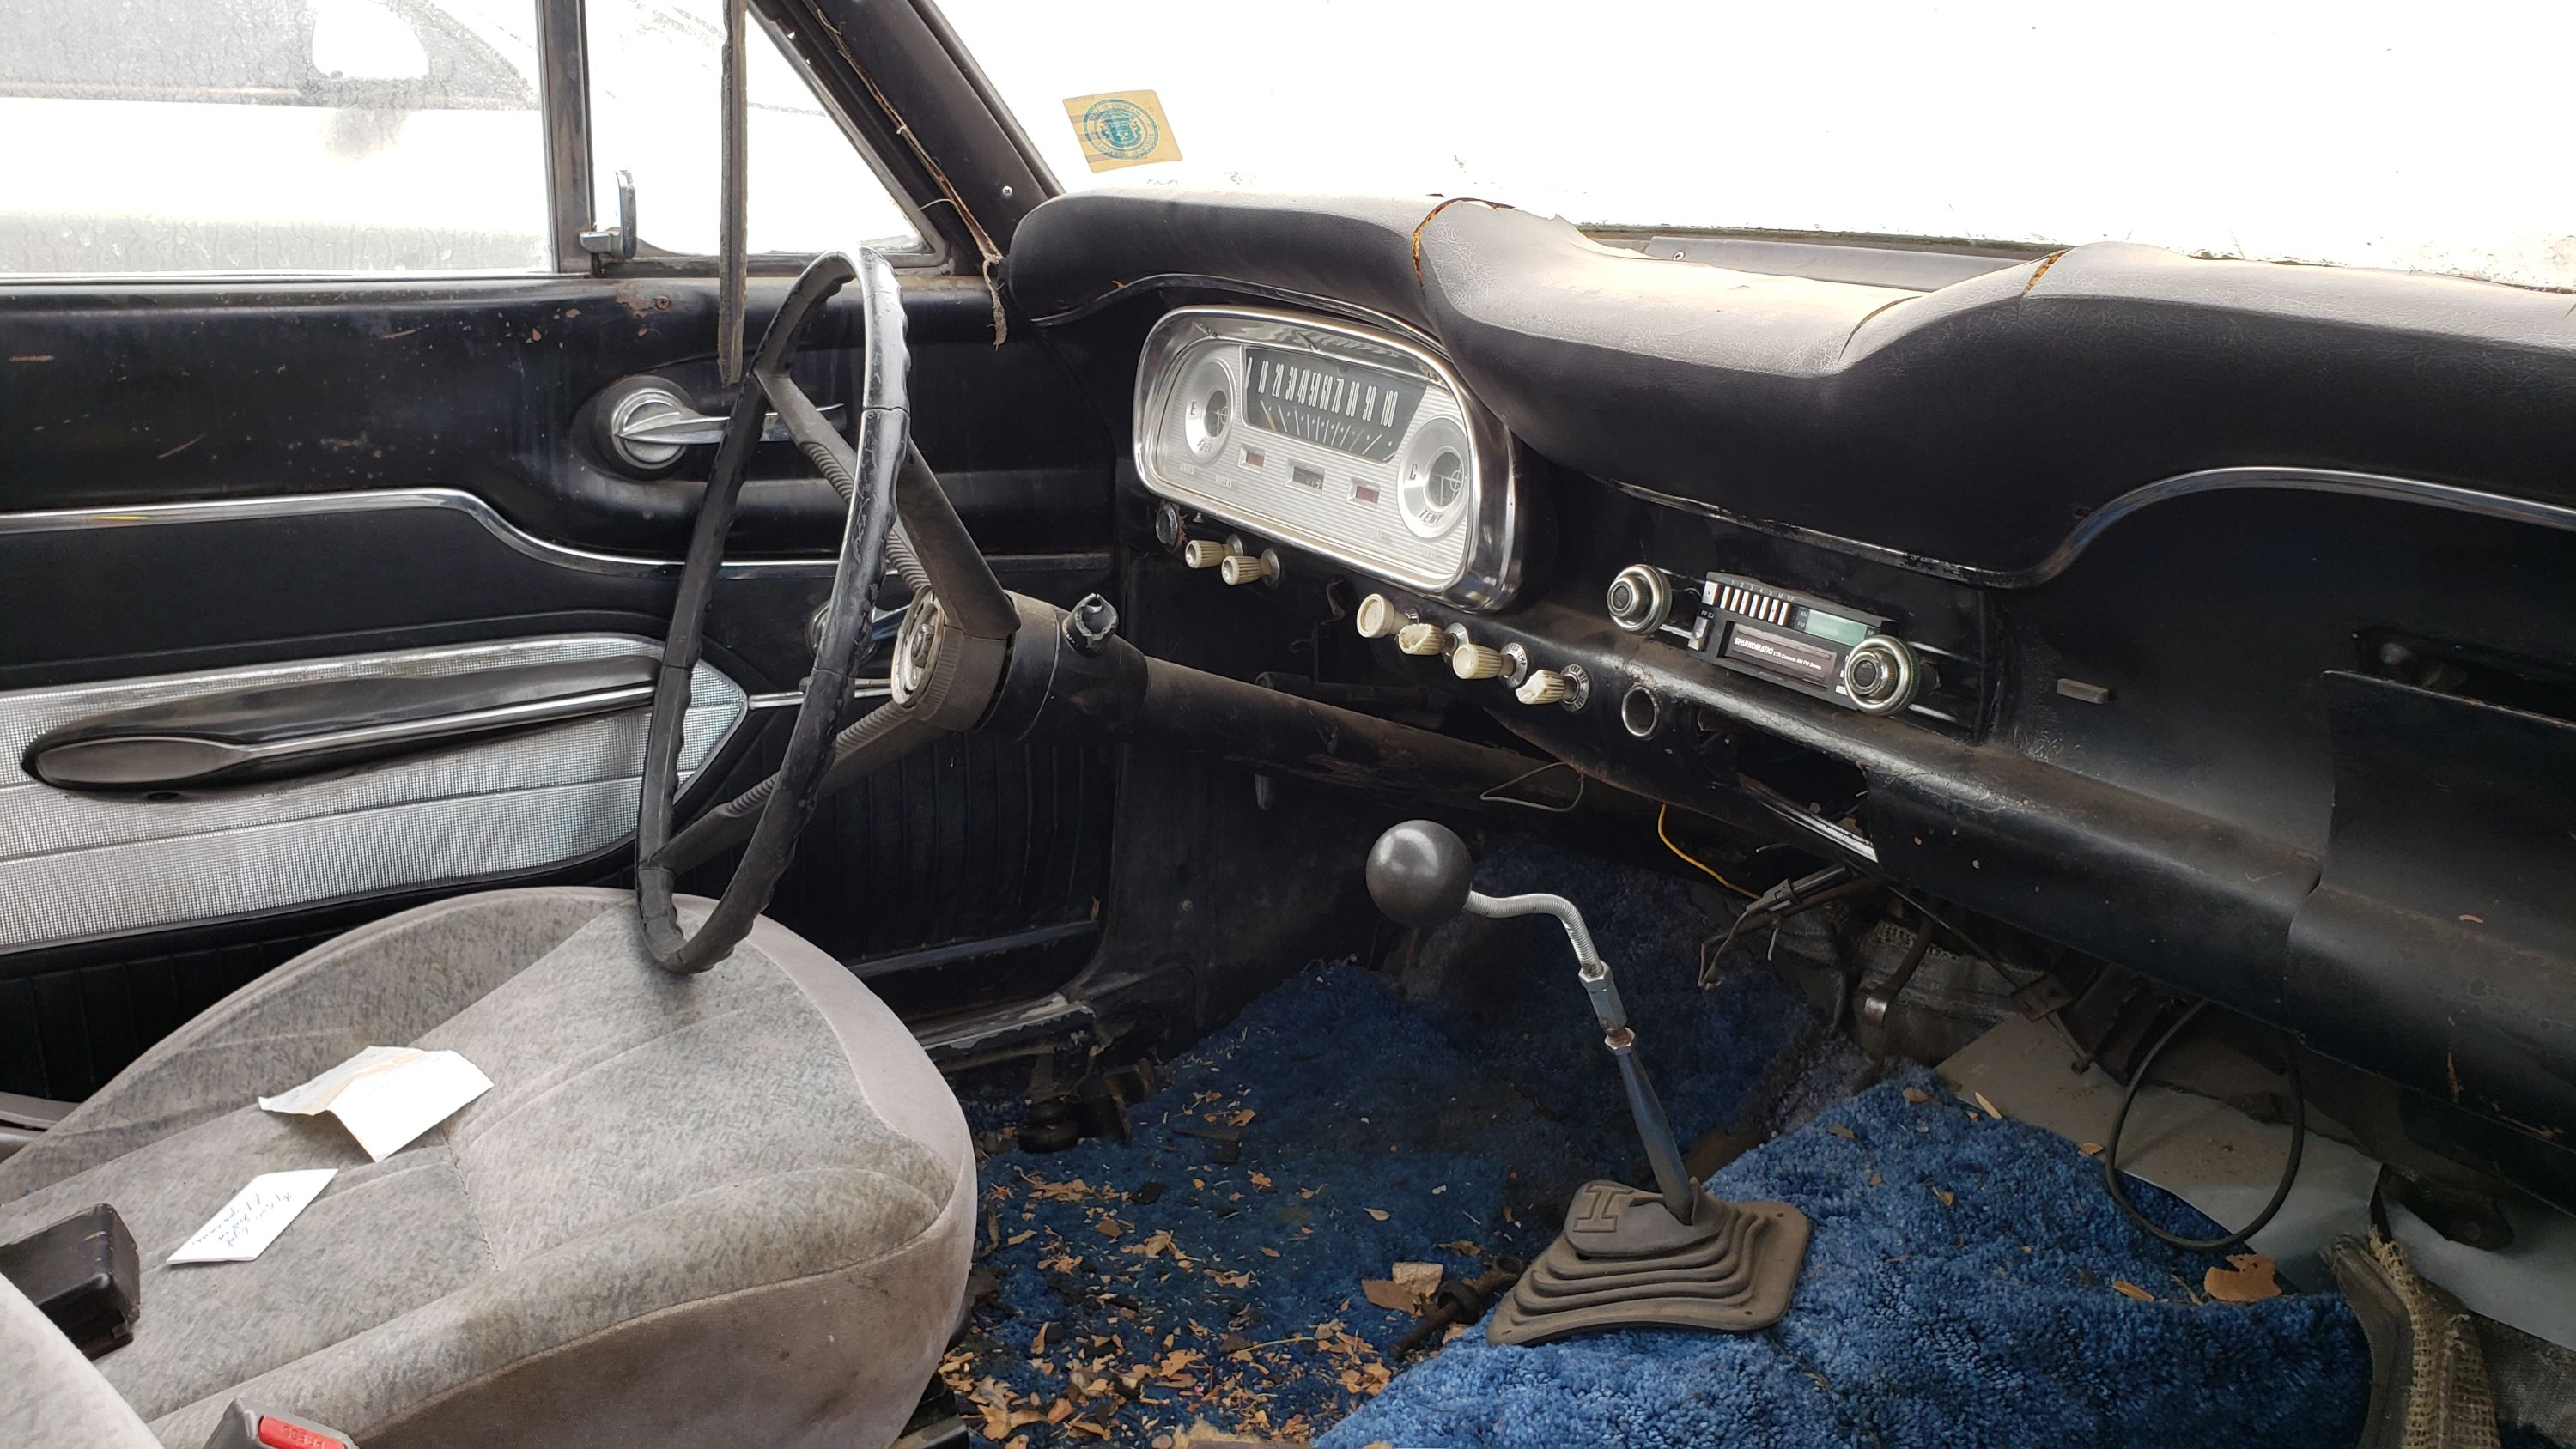 Junkyard Find 1961 Ford Falcon Ranchero The Truth About Cars